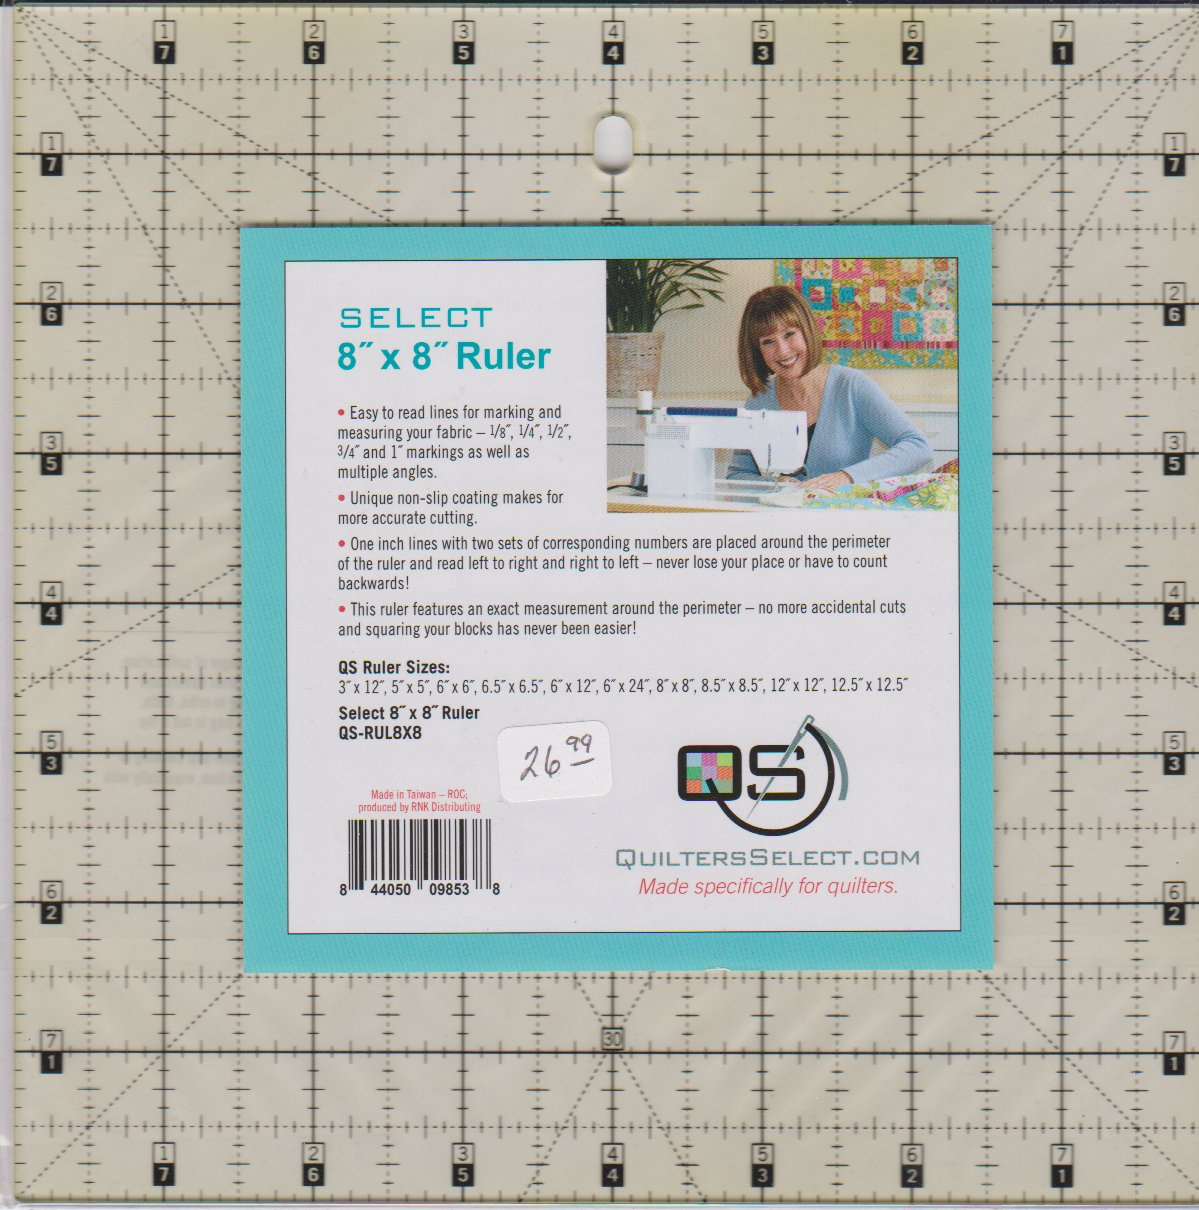 Quilters Select Ruler, 8 square